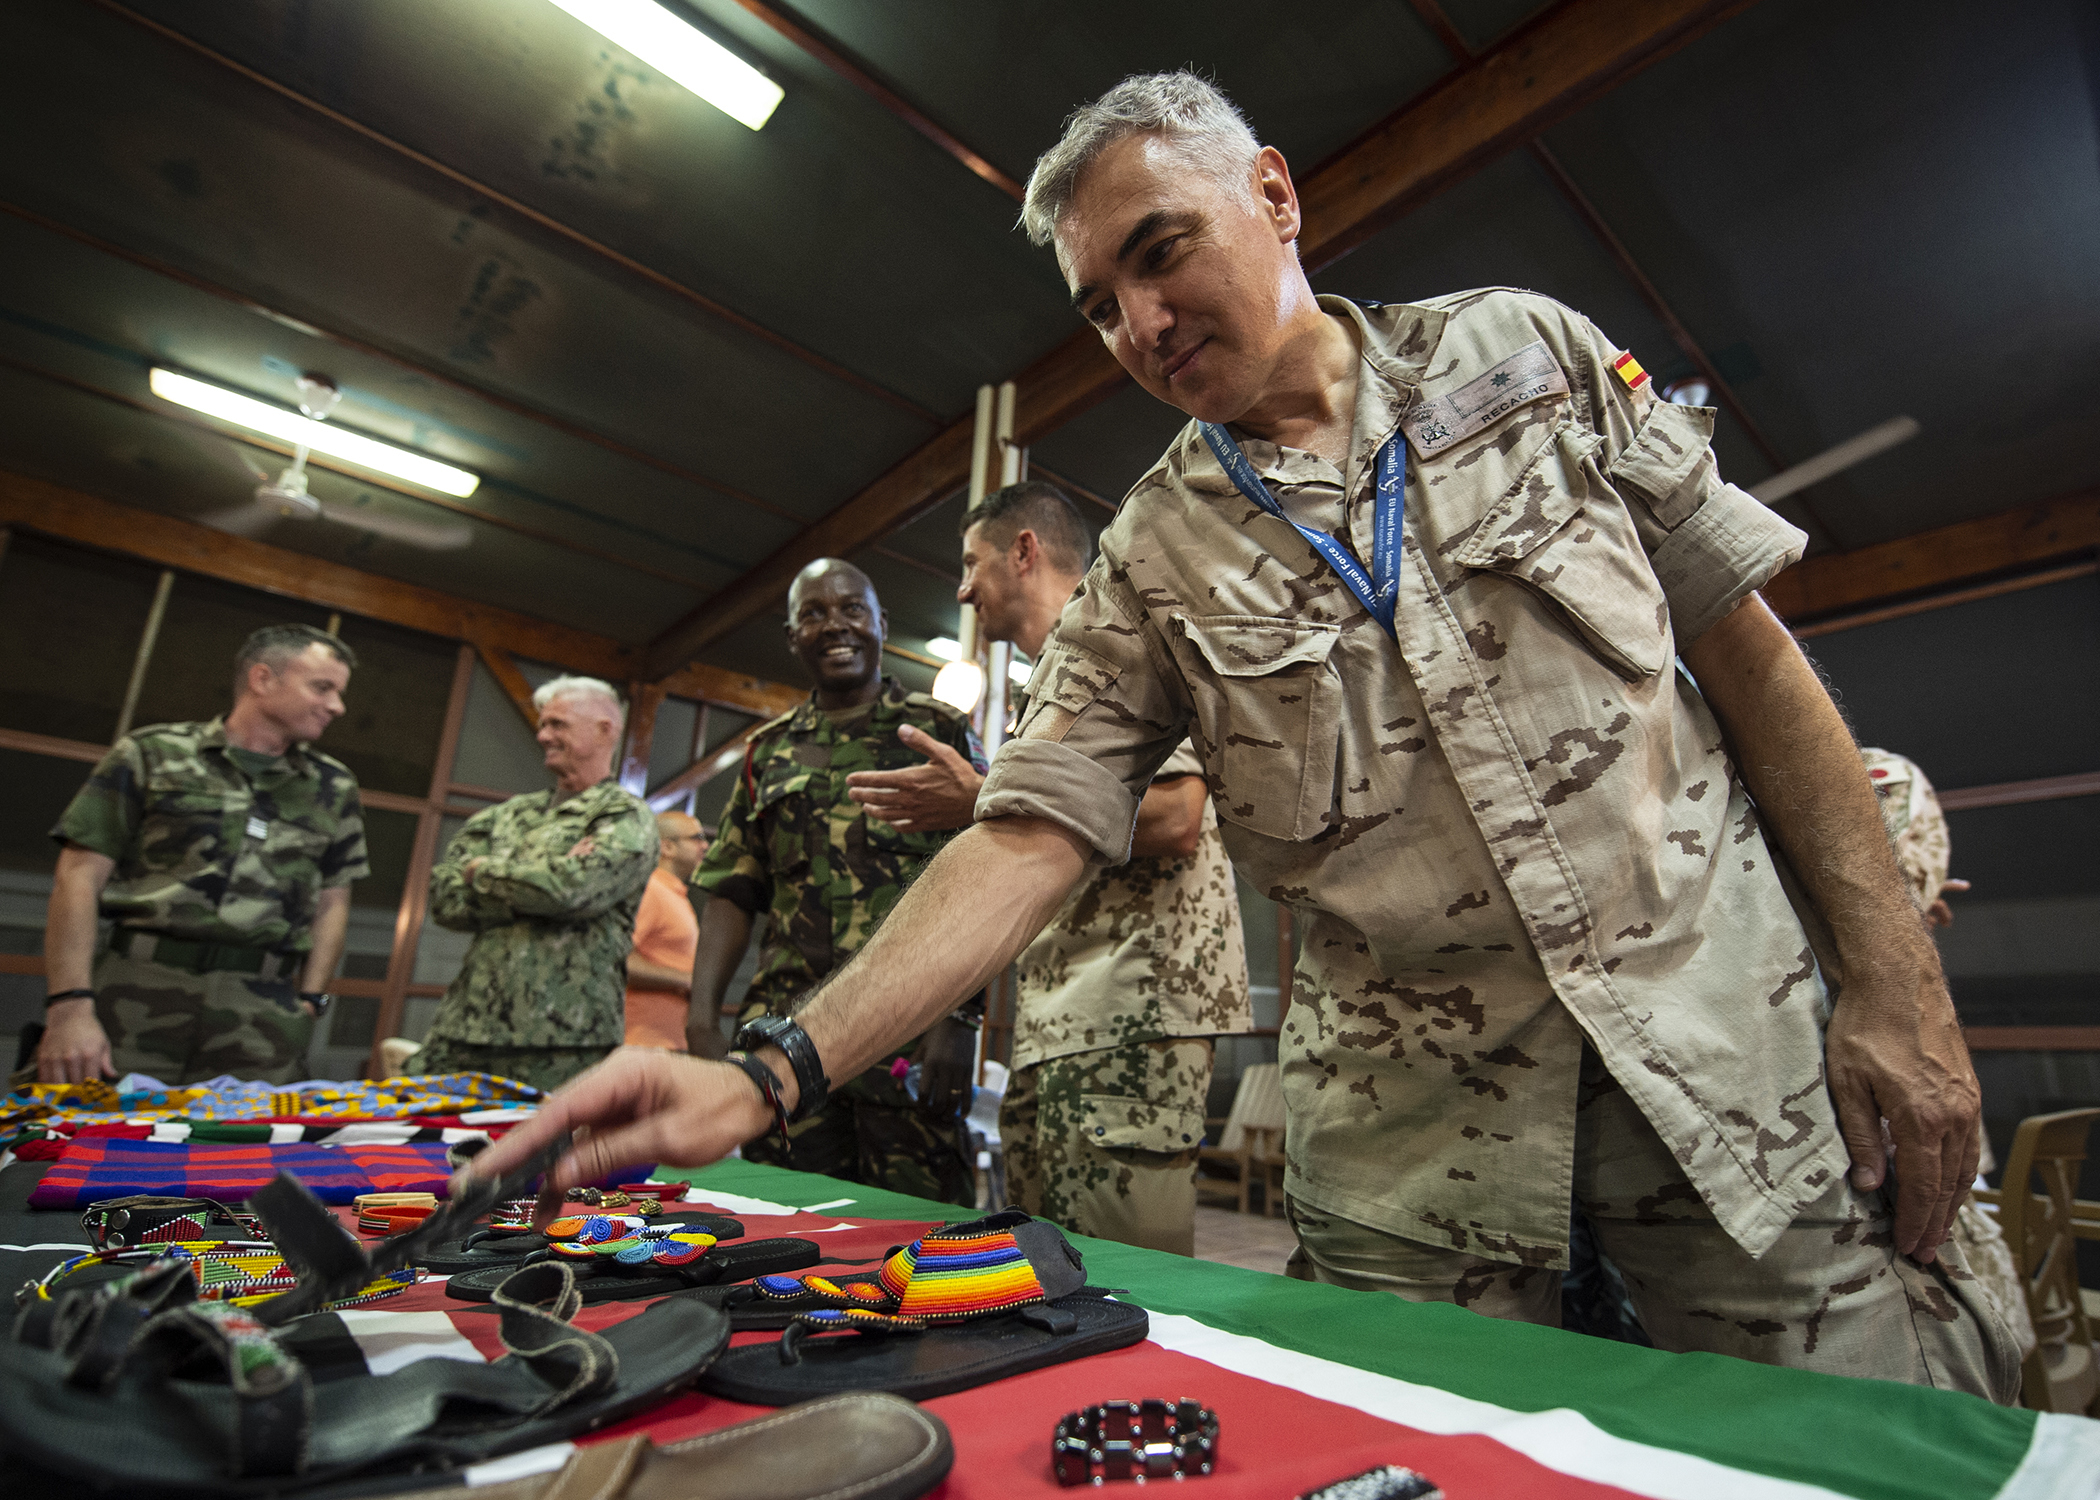 Multinational military partners look at memorabilia from Kenya while attending a Combined Joint Task Force-Horn of Africa (CJTF-HOA) cultural exchange event at Camp Lemonnier, Djibouti, March 27, 2019. CJTF-HOA holds monthly exchange events with multinational military partners affiliated with Camp Lemonnier to strengthen alliances and attract new partners in the combined joint military environment. (U.S. Air Force photo by Tech. Sgt. Shawn Nickel)